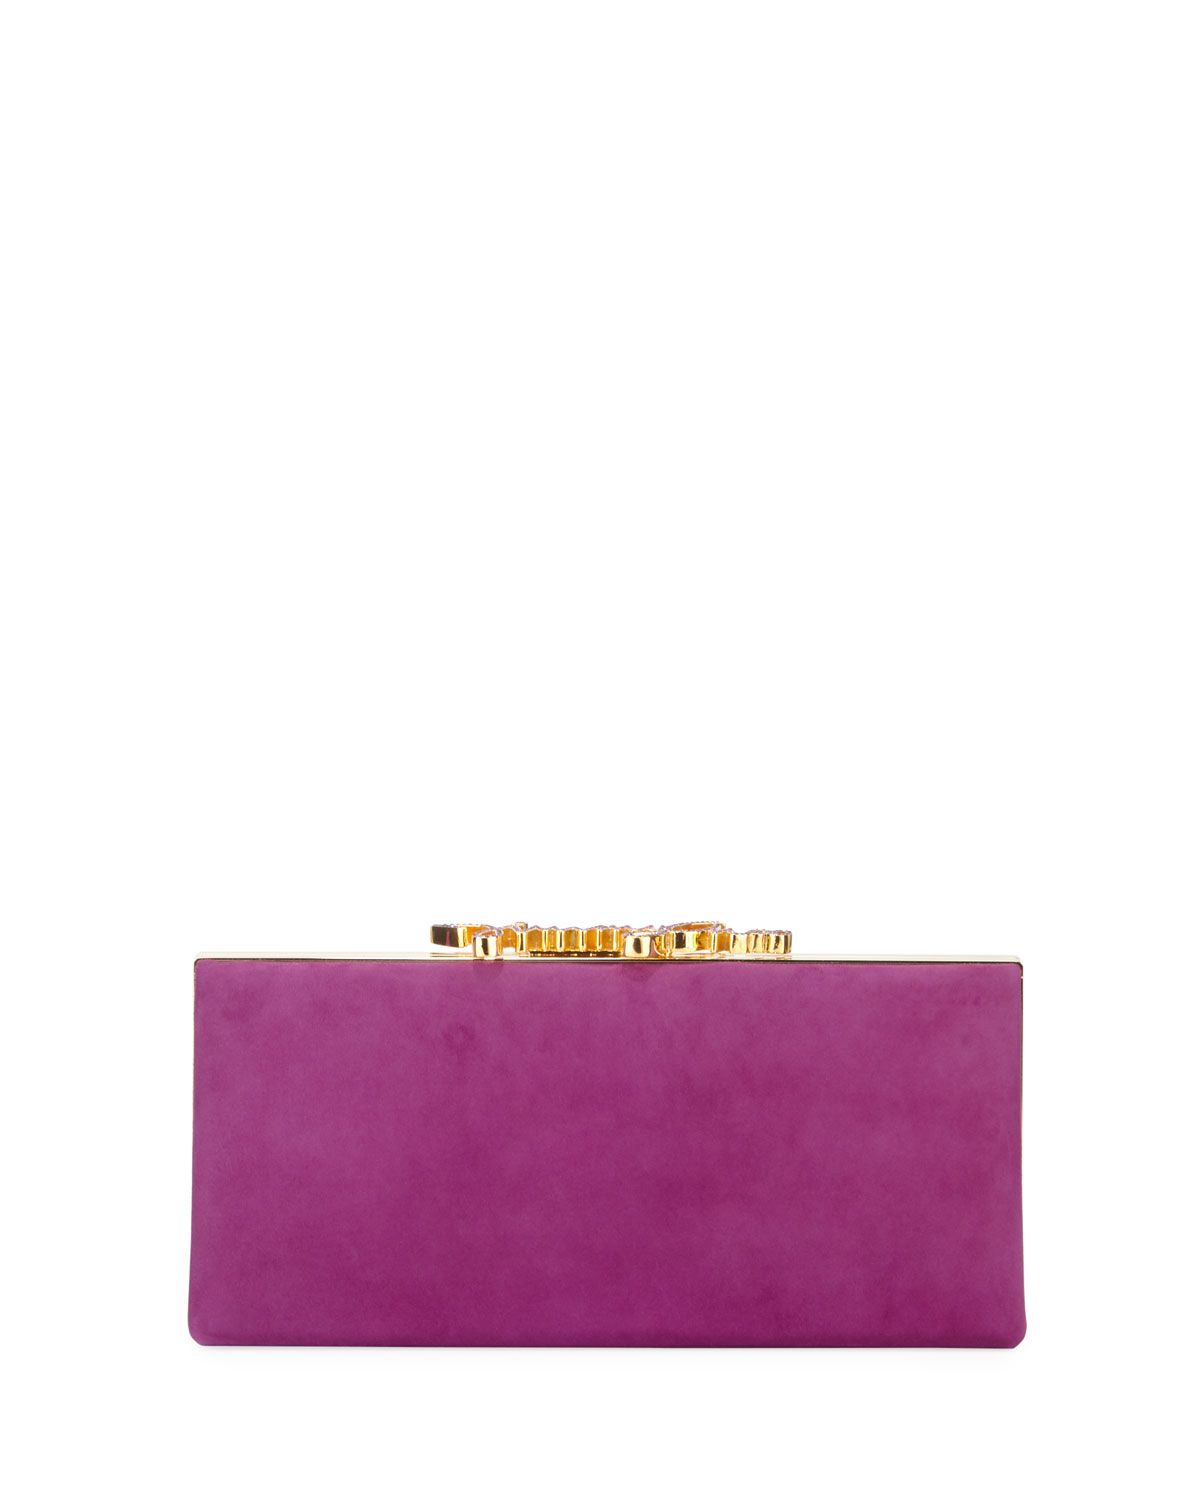 Celeste Small Frame Clutch Bag